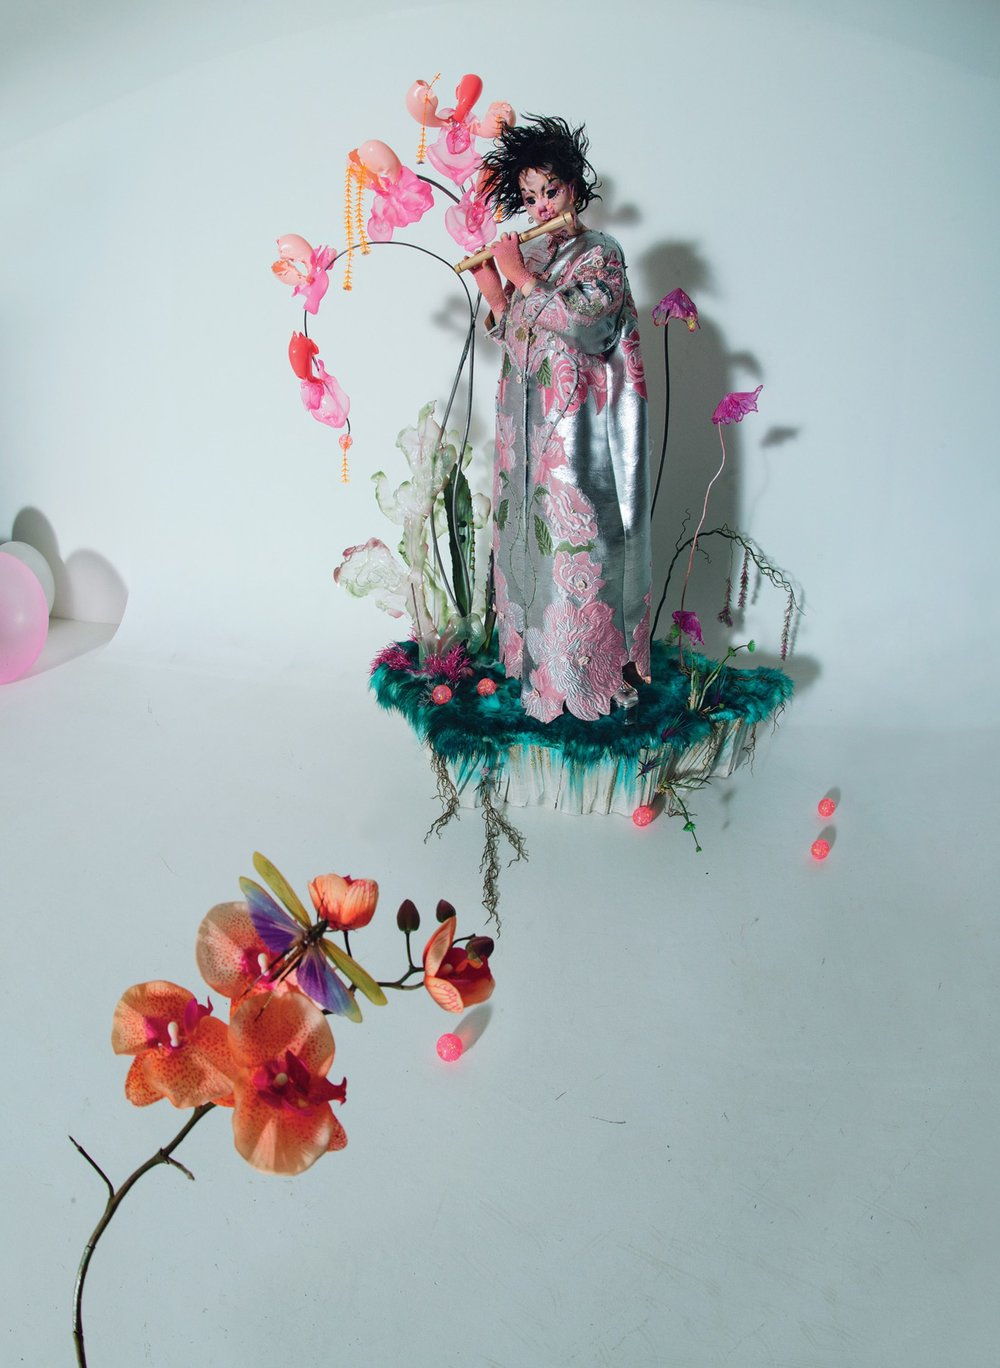 Photographs by Tim Walker, Styled by Katy England